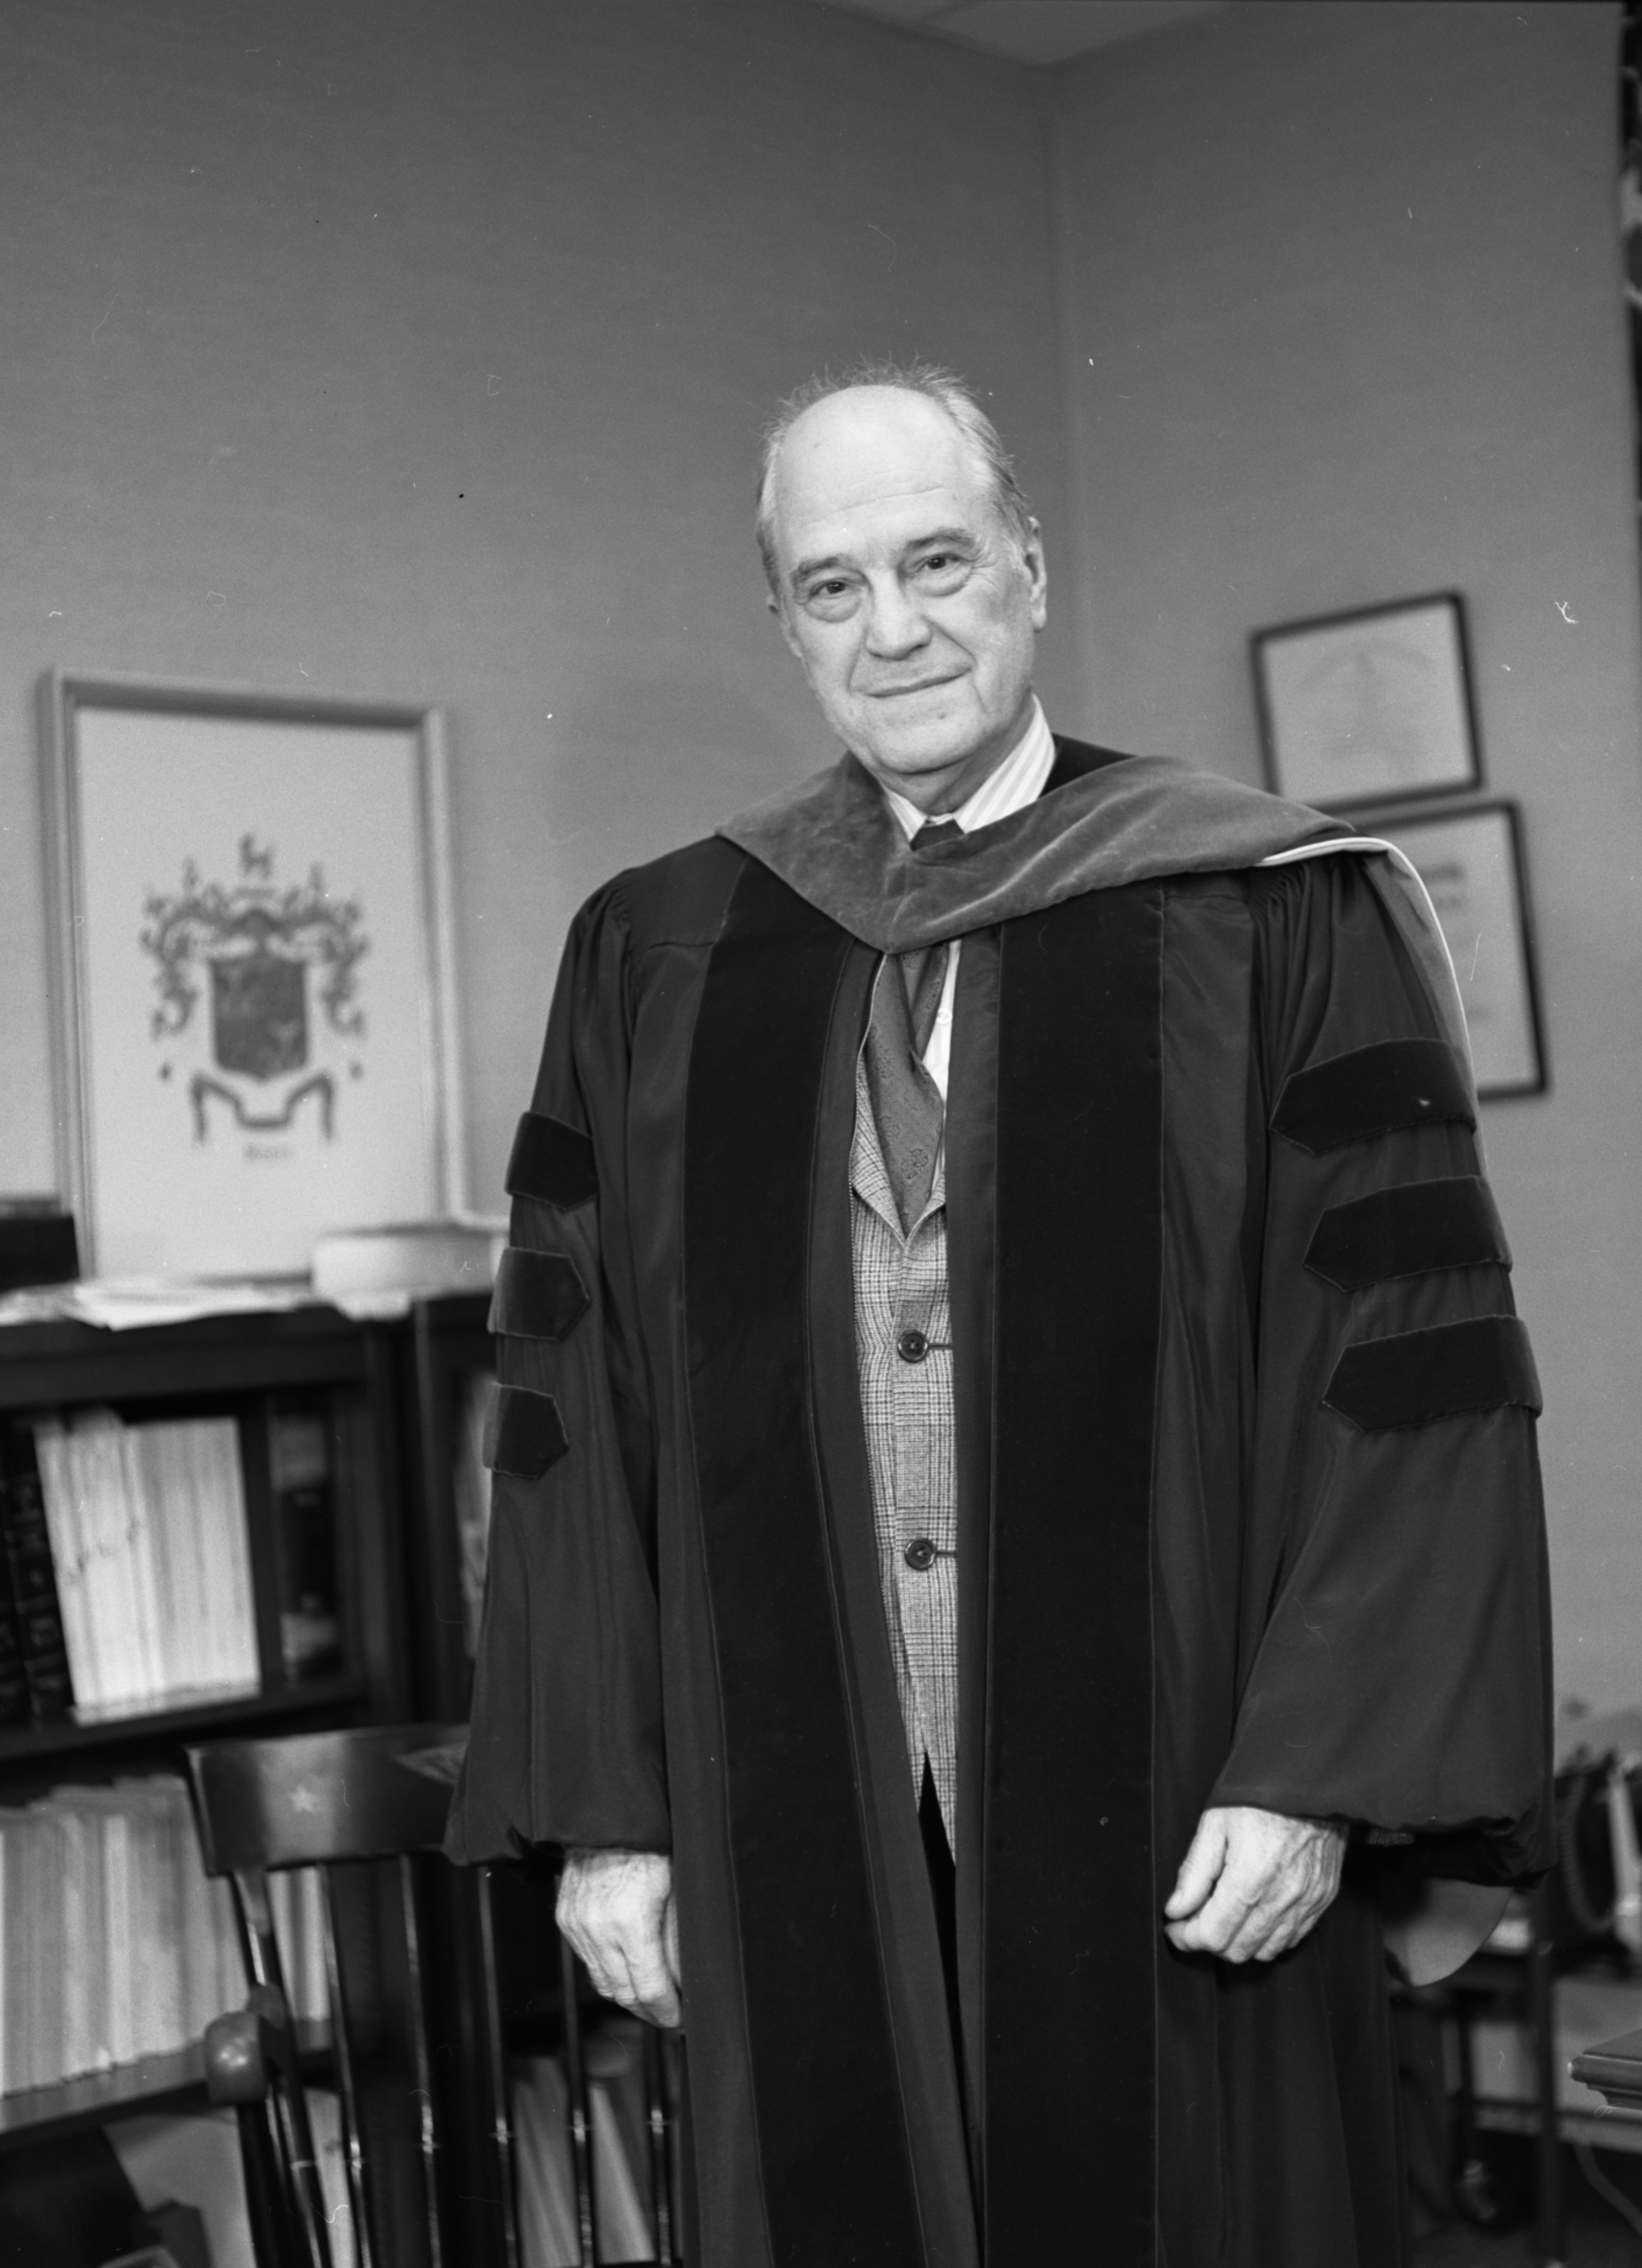 George Mason University President, Lorin A. Thompson in academic regalia, February 6, 1973